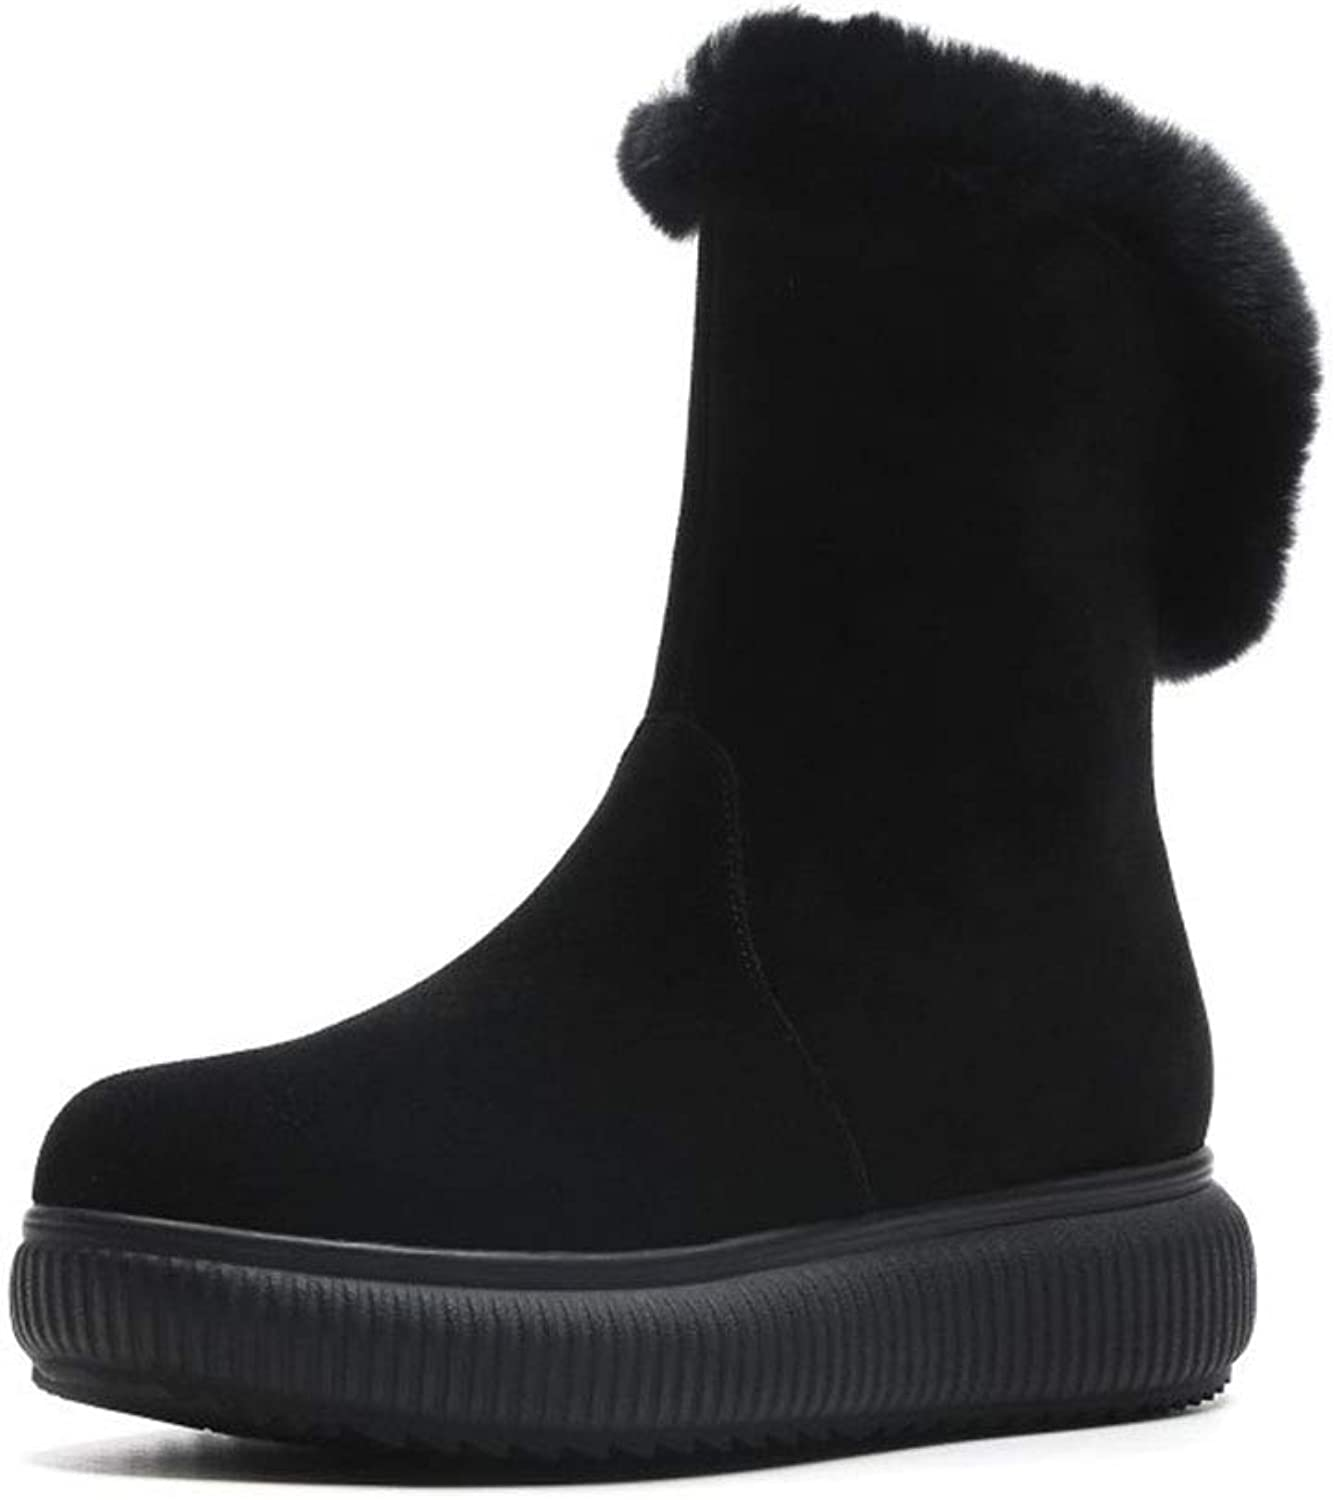 Women's Boots Winter Platform shoes Suede Snow Boots Cotton Boots Warm Boots Leather Non-Slip Ladies Boots (color   Black, Size   36)